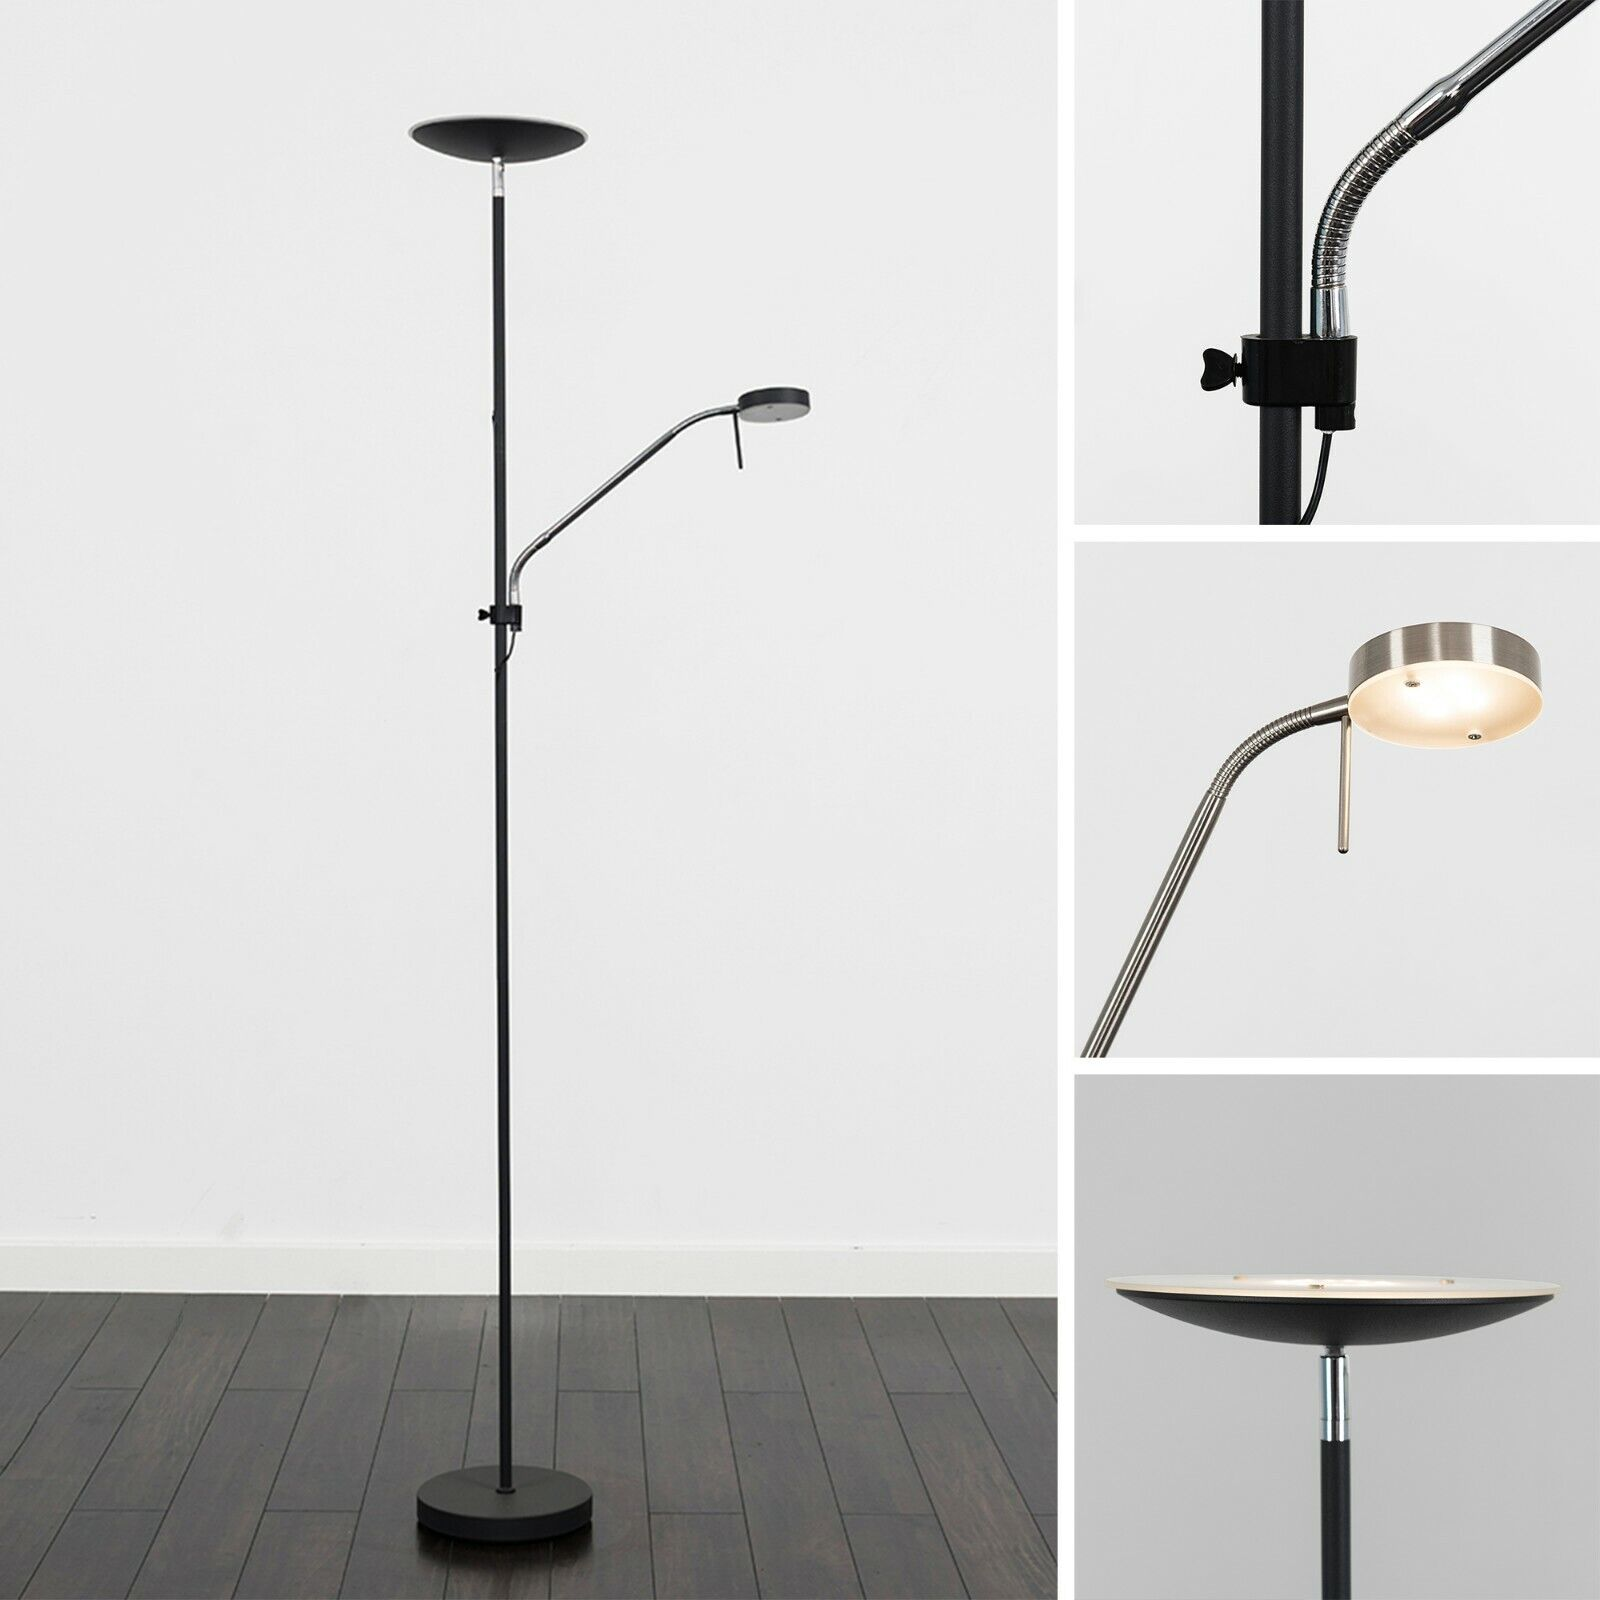 Details about Modern Integrated LED Floor Lamp Father (16W) and Son (4W) Design Warm White